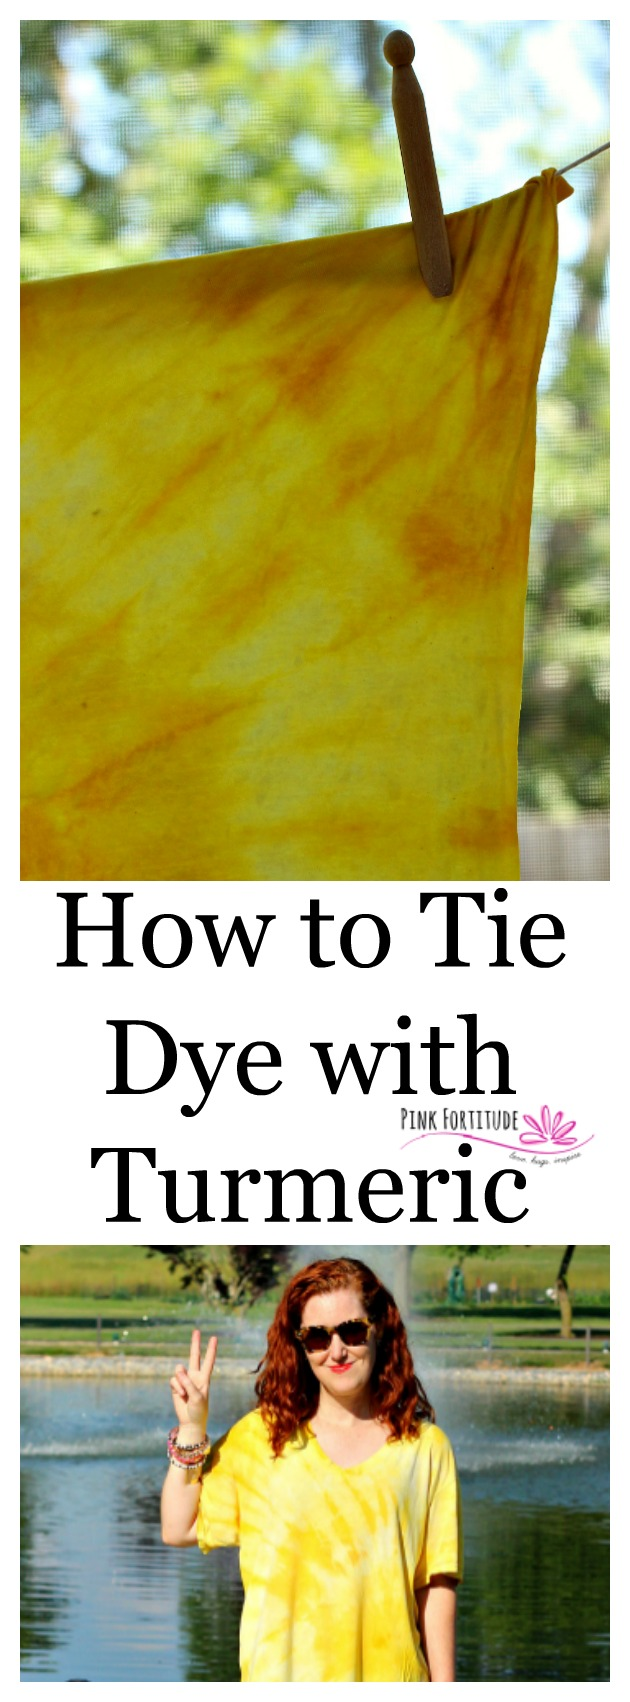 "Whether you are responding to the summer anthem of ""mom, I'm bored,"" planning matching t-shirts for an event, or just want to have a fun DIY project for yourself or a gift for someone you love, tie dying is always the answer! If you ever wondered if you could tie dye using more all-natural methods, you stumbled on the right place to learn how. Turmeric creates a brilliant yellow. Let's have some fun!"